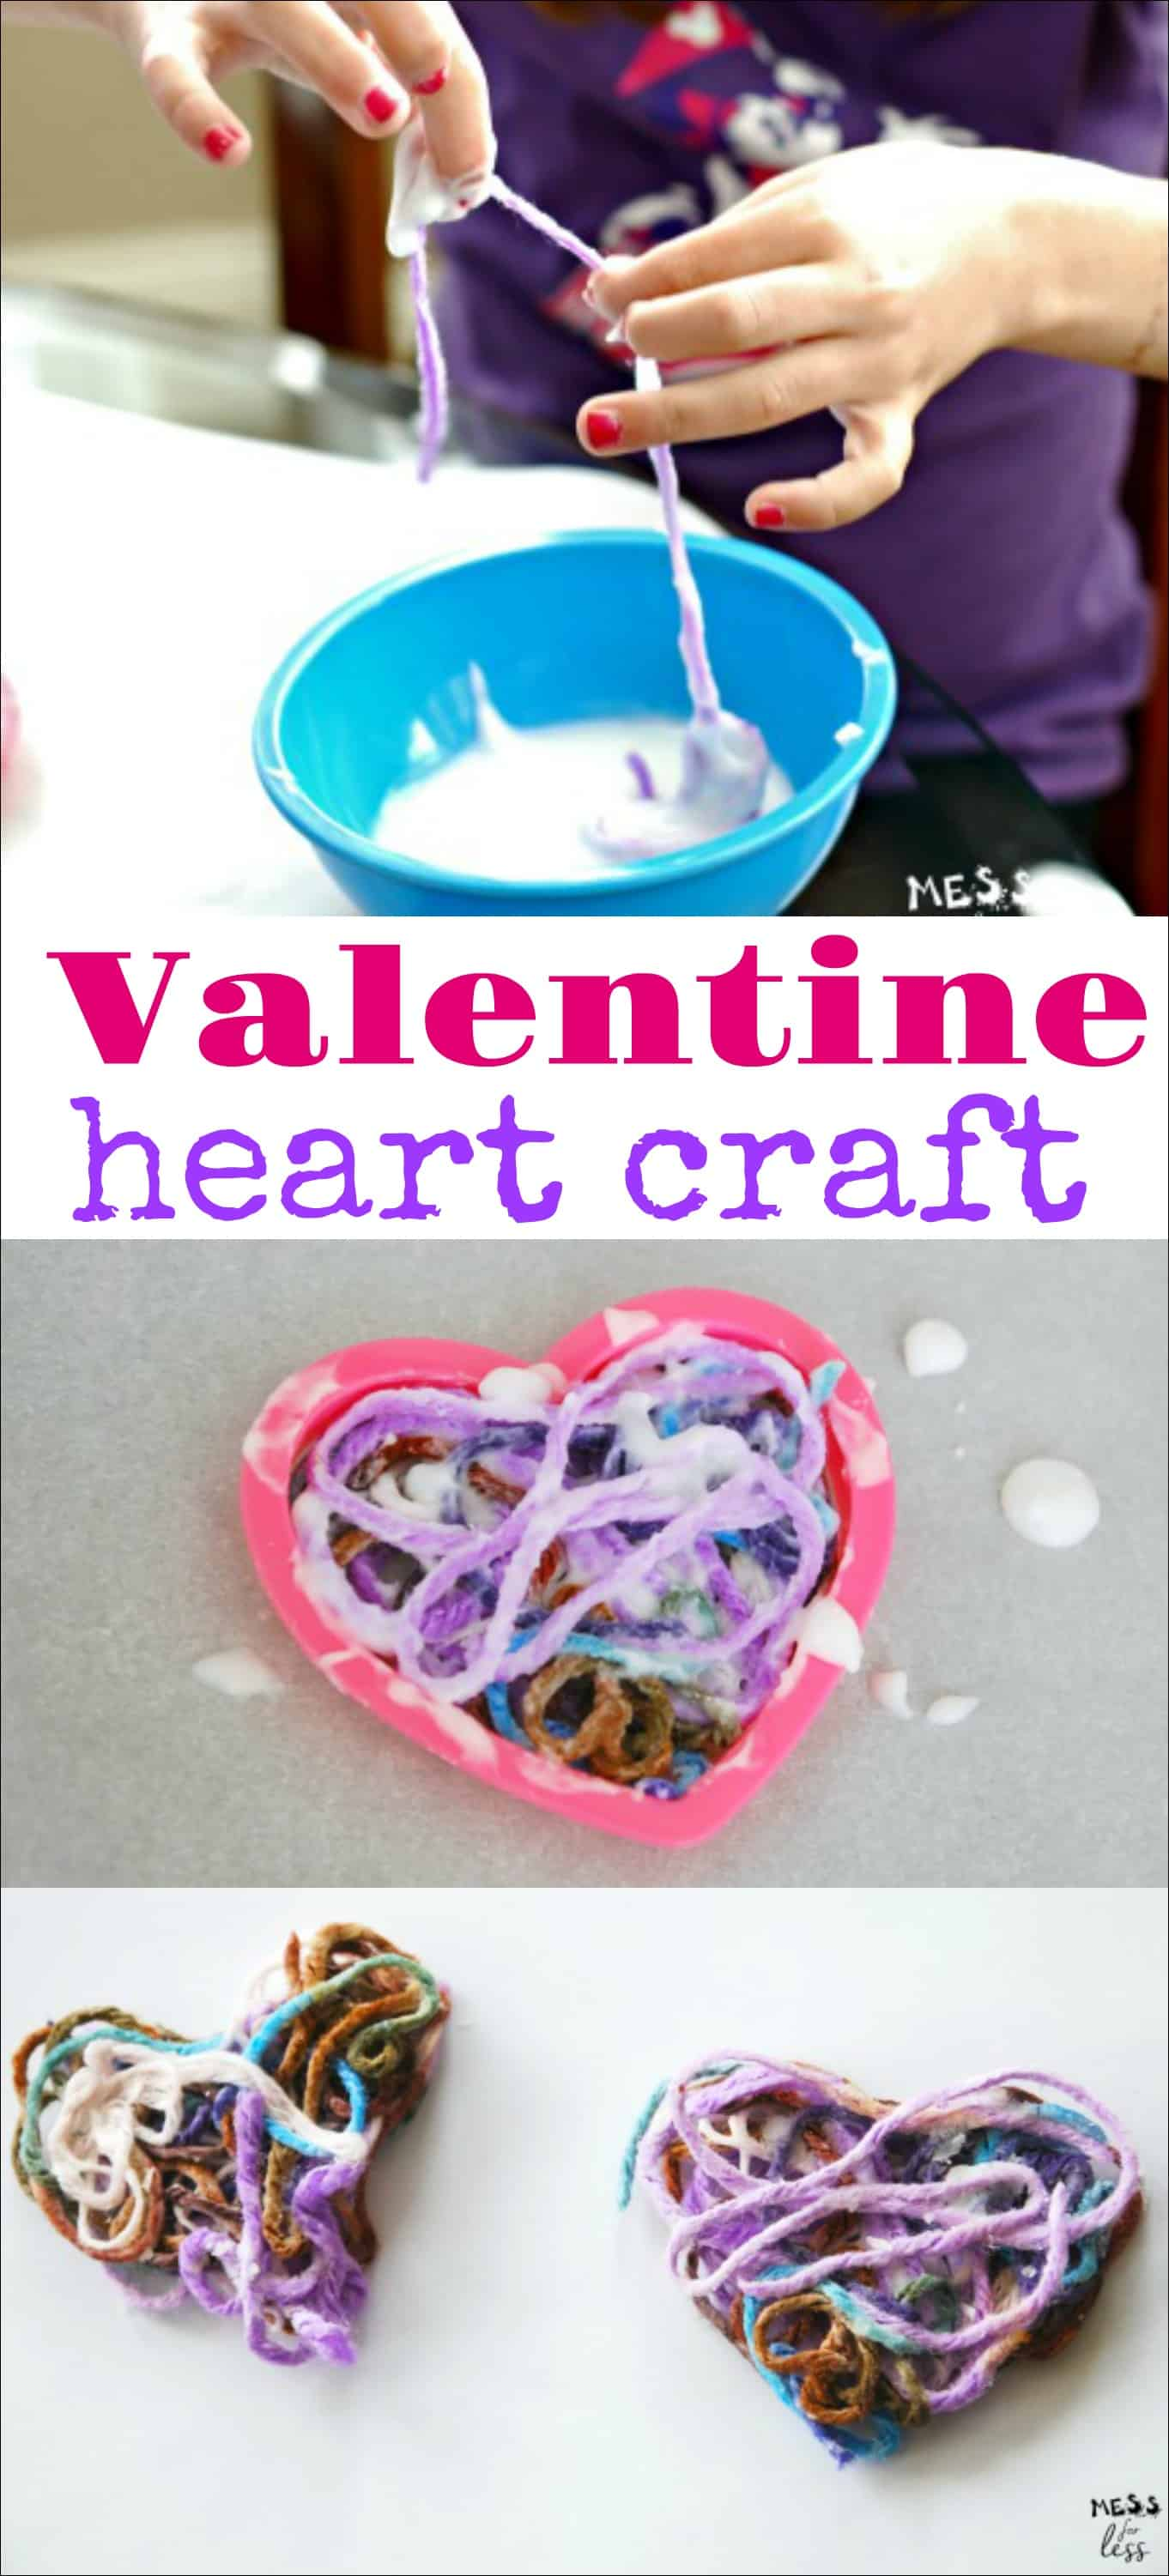 This Valentine Heart Craft is a fun Valentine's Day Activity for kids. Using homemade glue and colorful yarn, kids will make this fun decoration. Such a fun art project for children! #Valentinescraft #kidsactivity